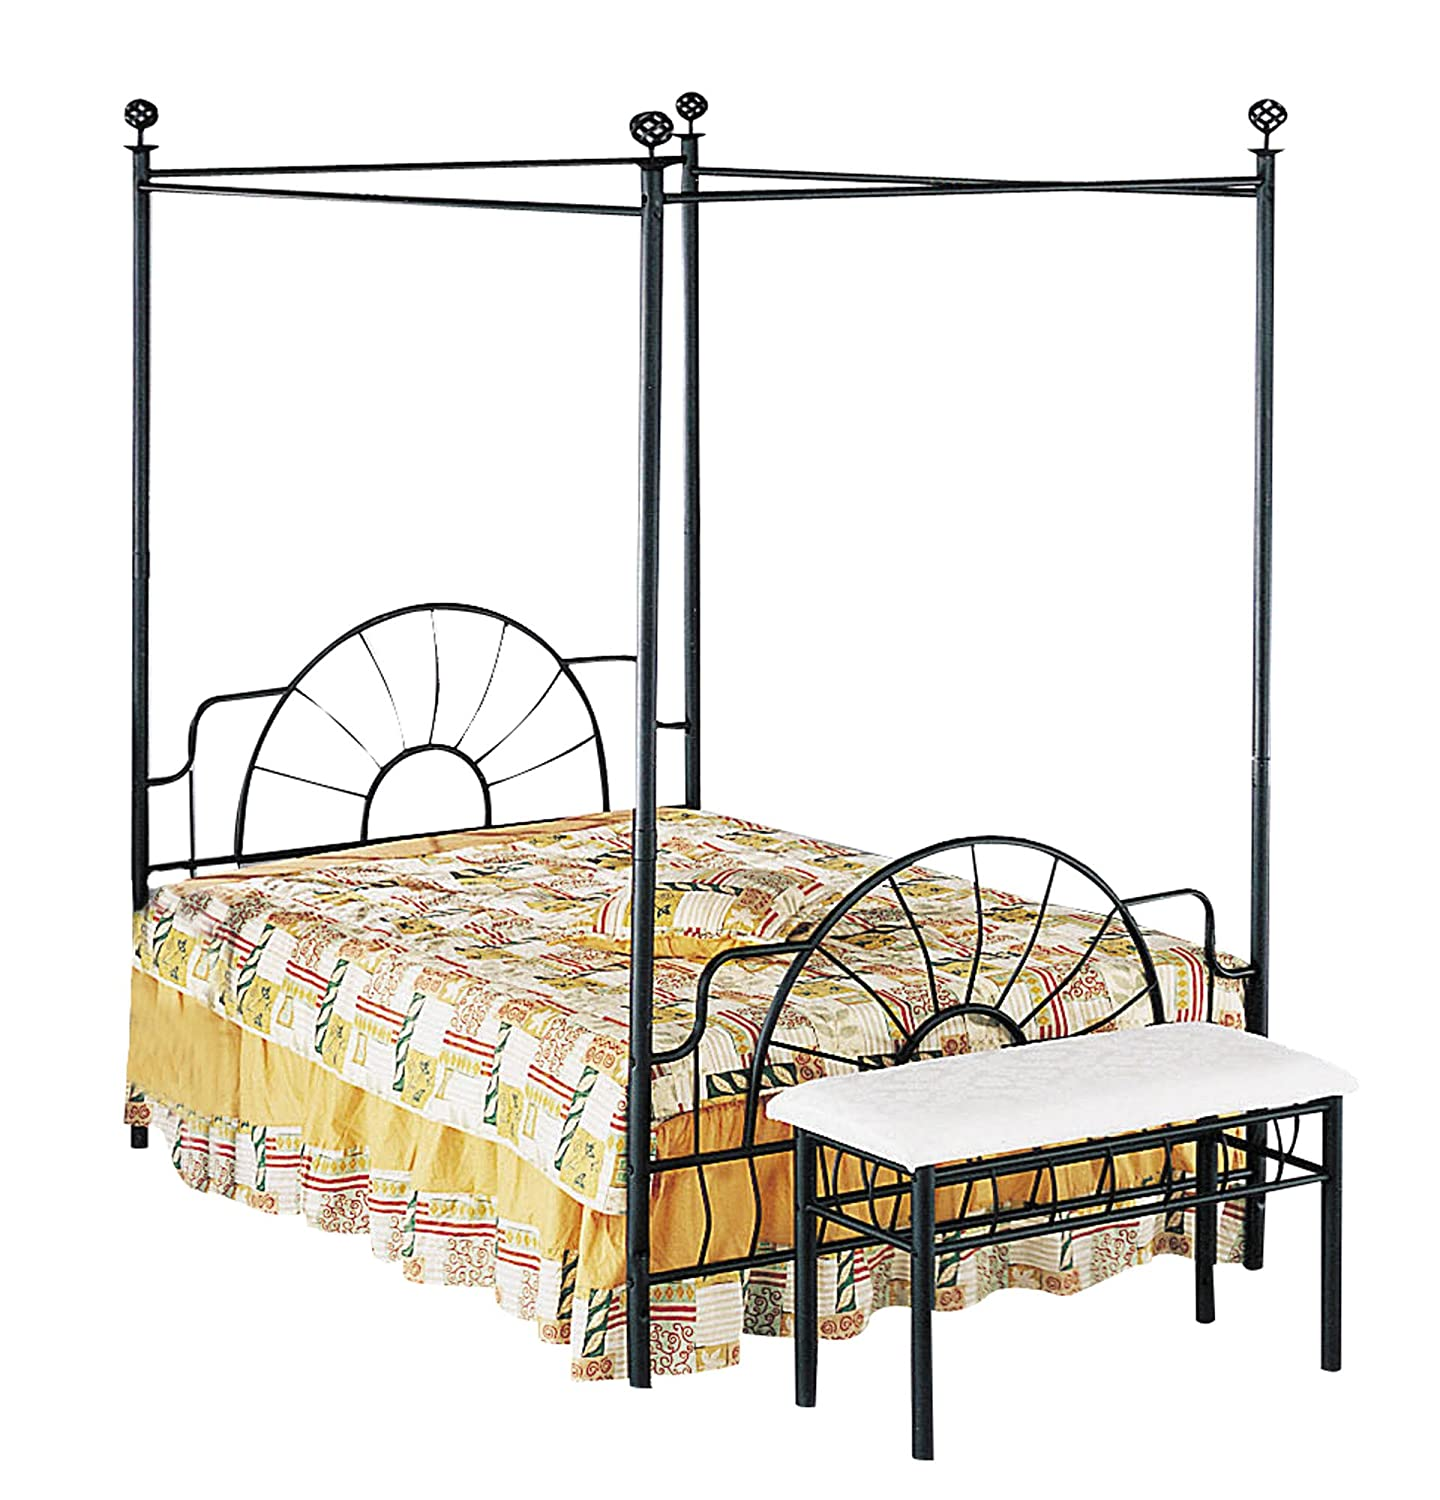 ACME 02084F Sunburst Full Canopy Bed HB/FB, Black Finish ACME Furniture DROP SHIP